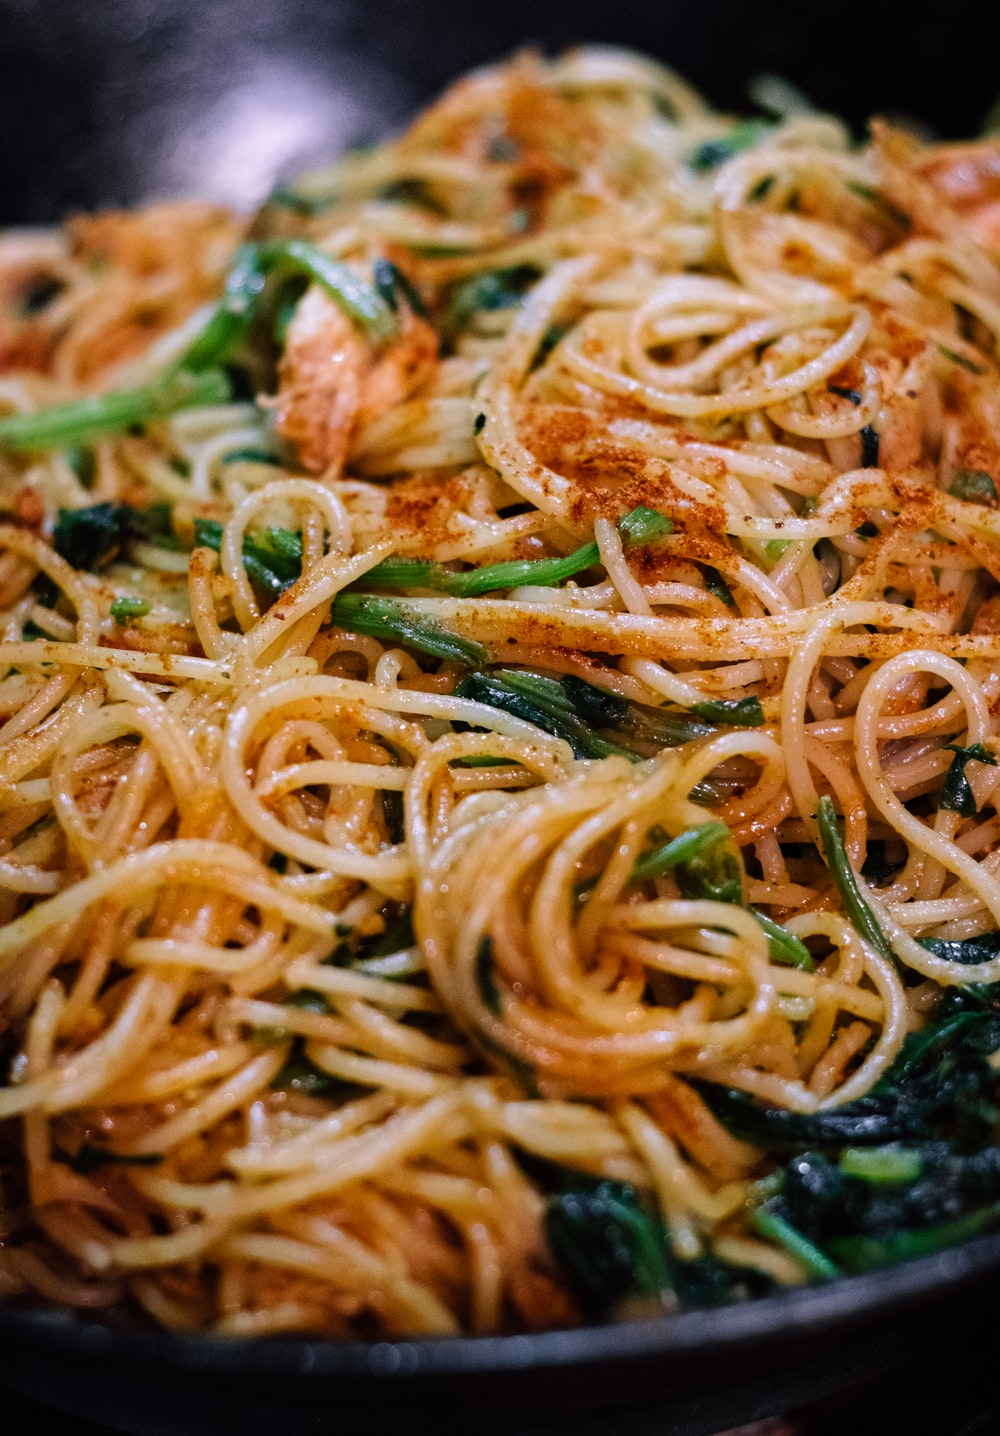 spaghetti with sauce on black plate